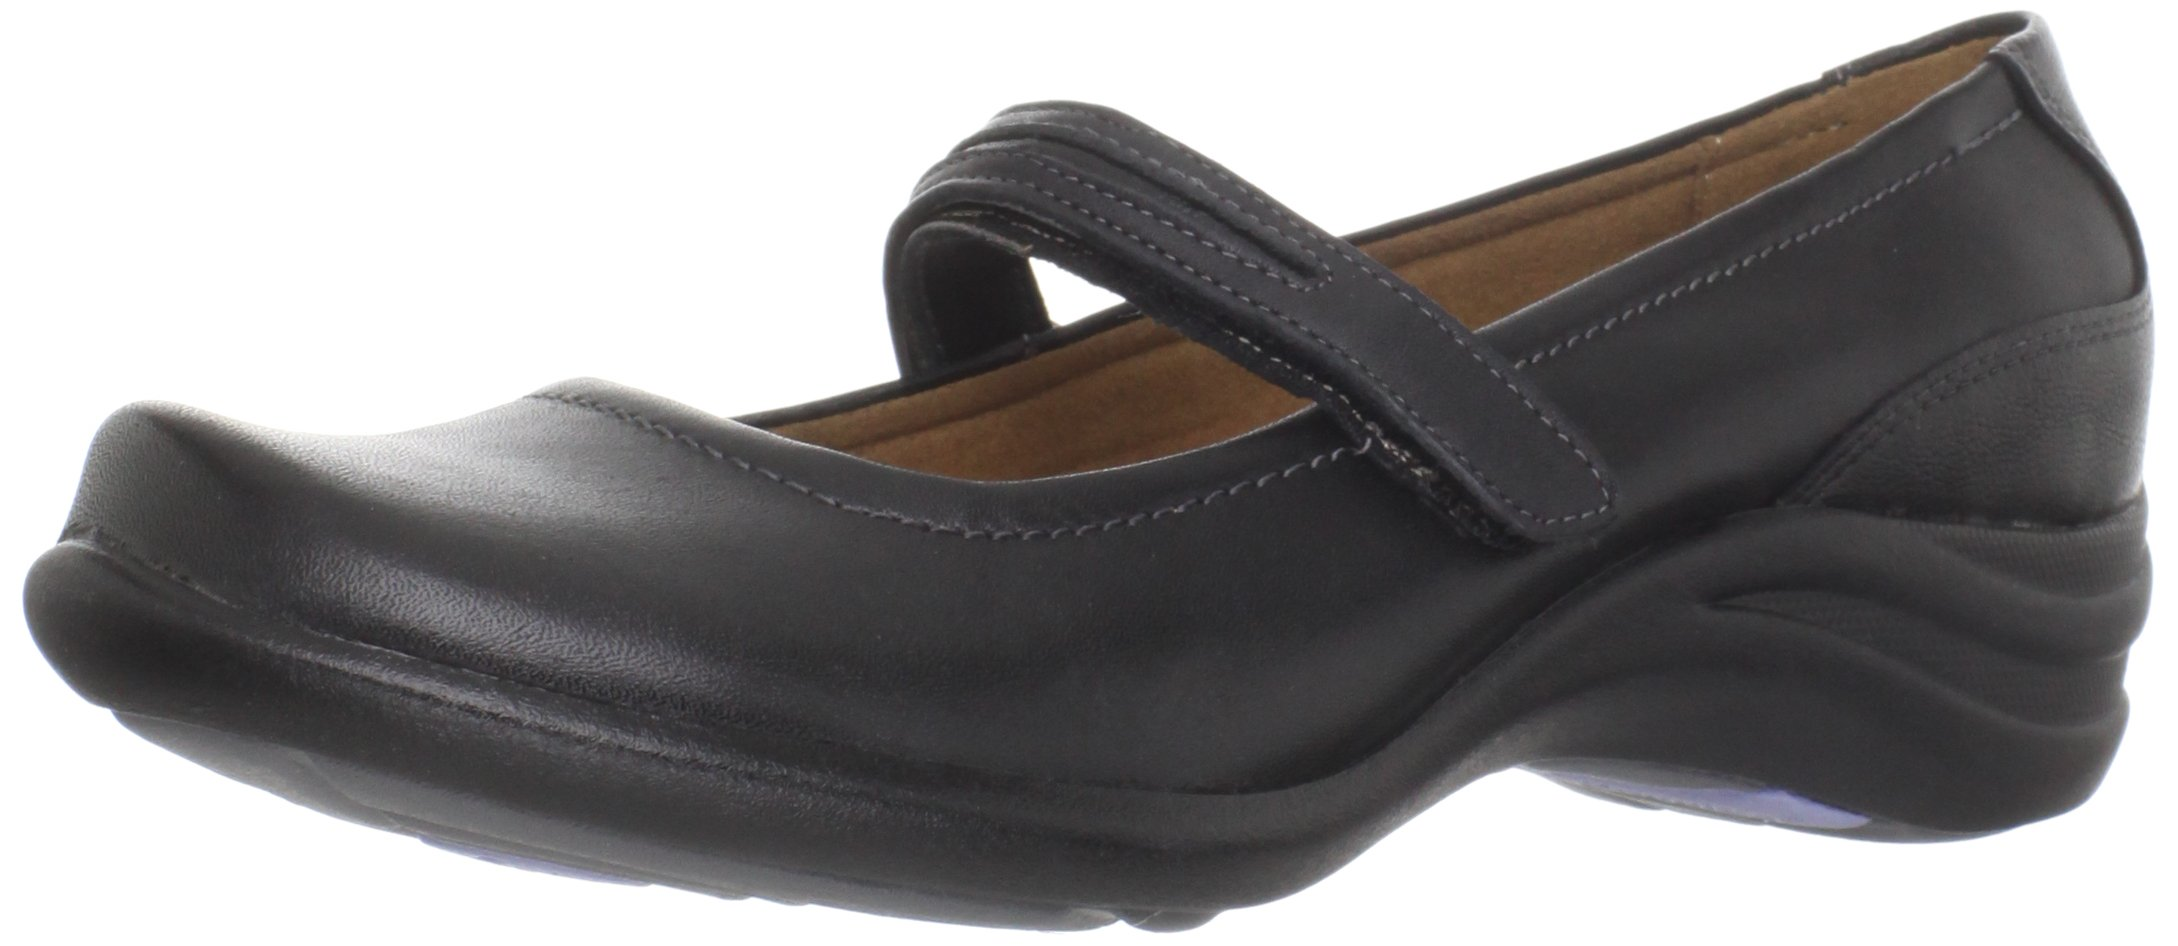 Hush Puppies Women's Epic Mary Slip-On Loafer,Black,7 M US by Hush Puppies